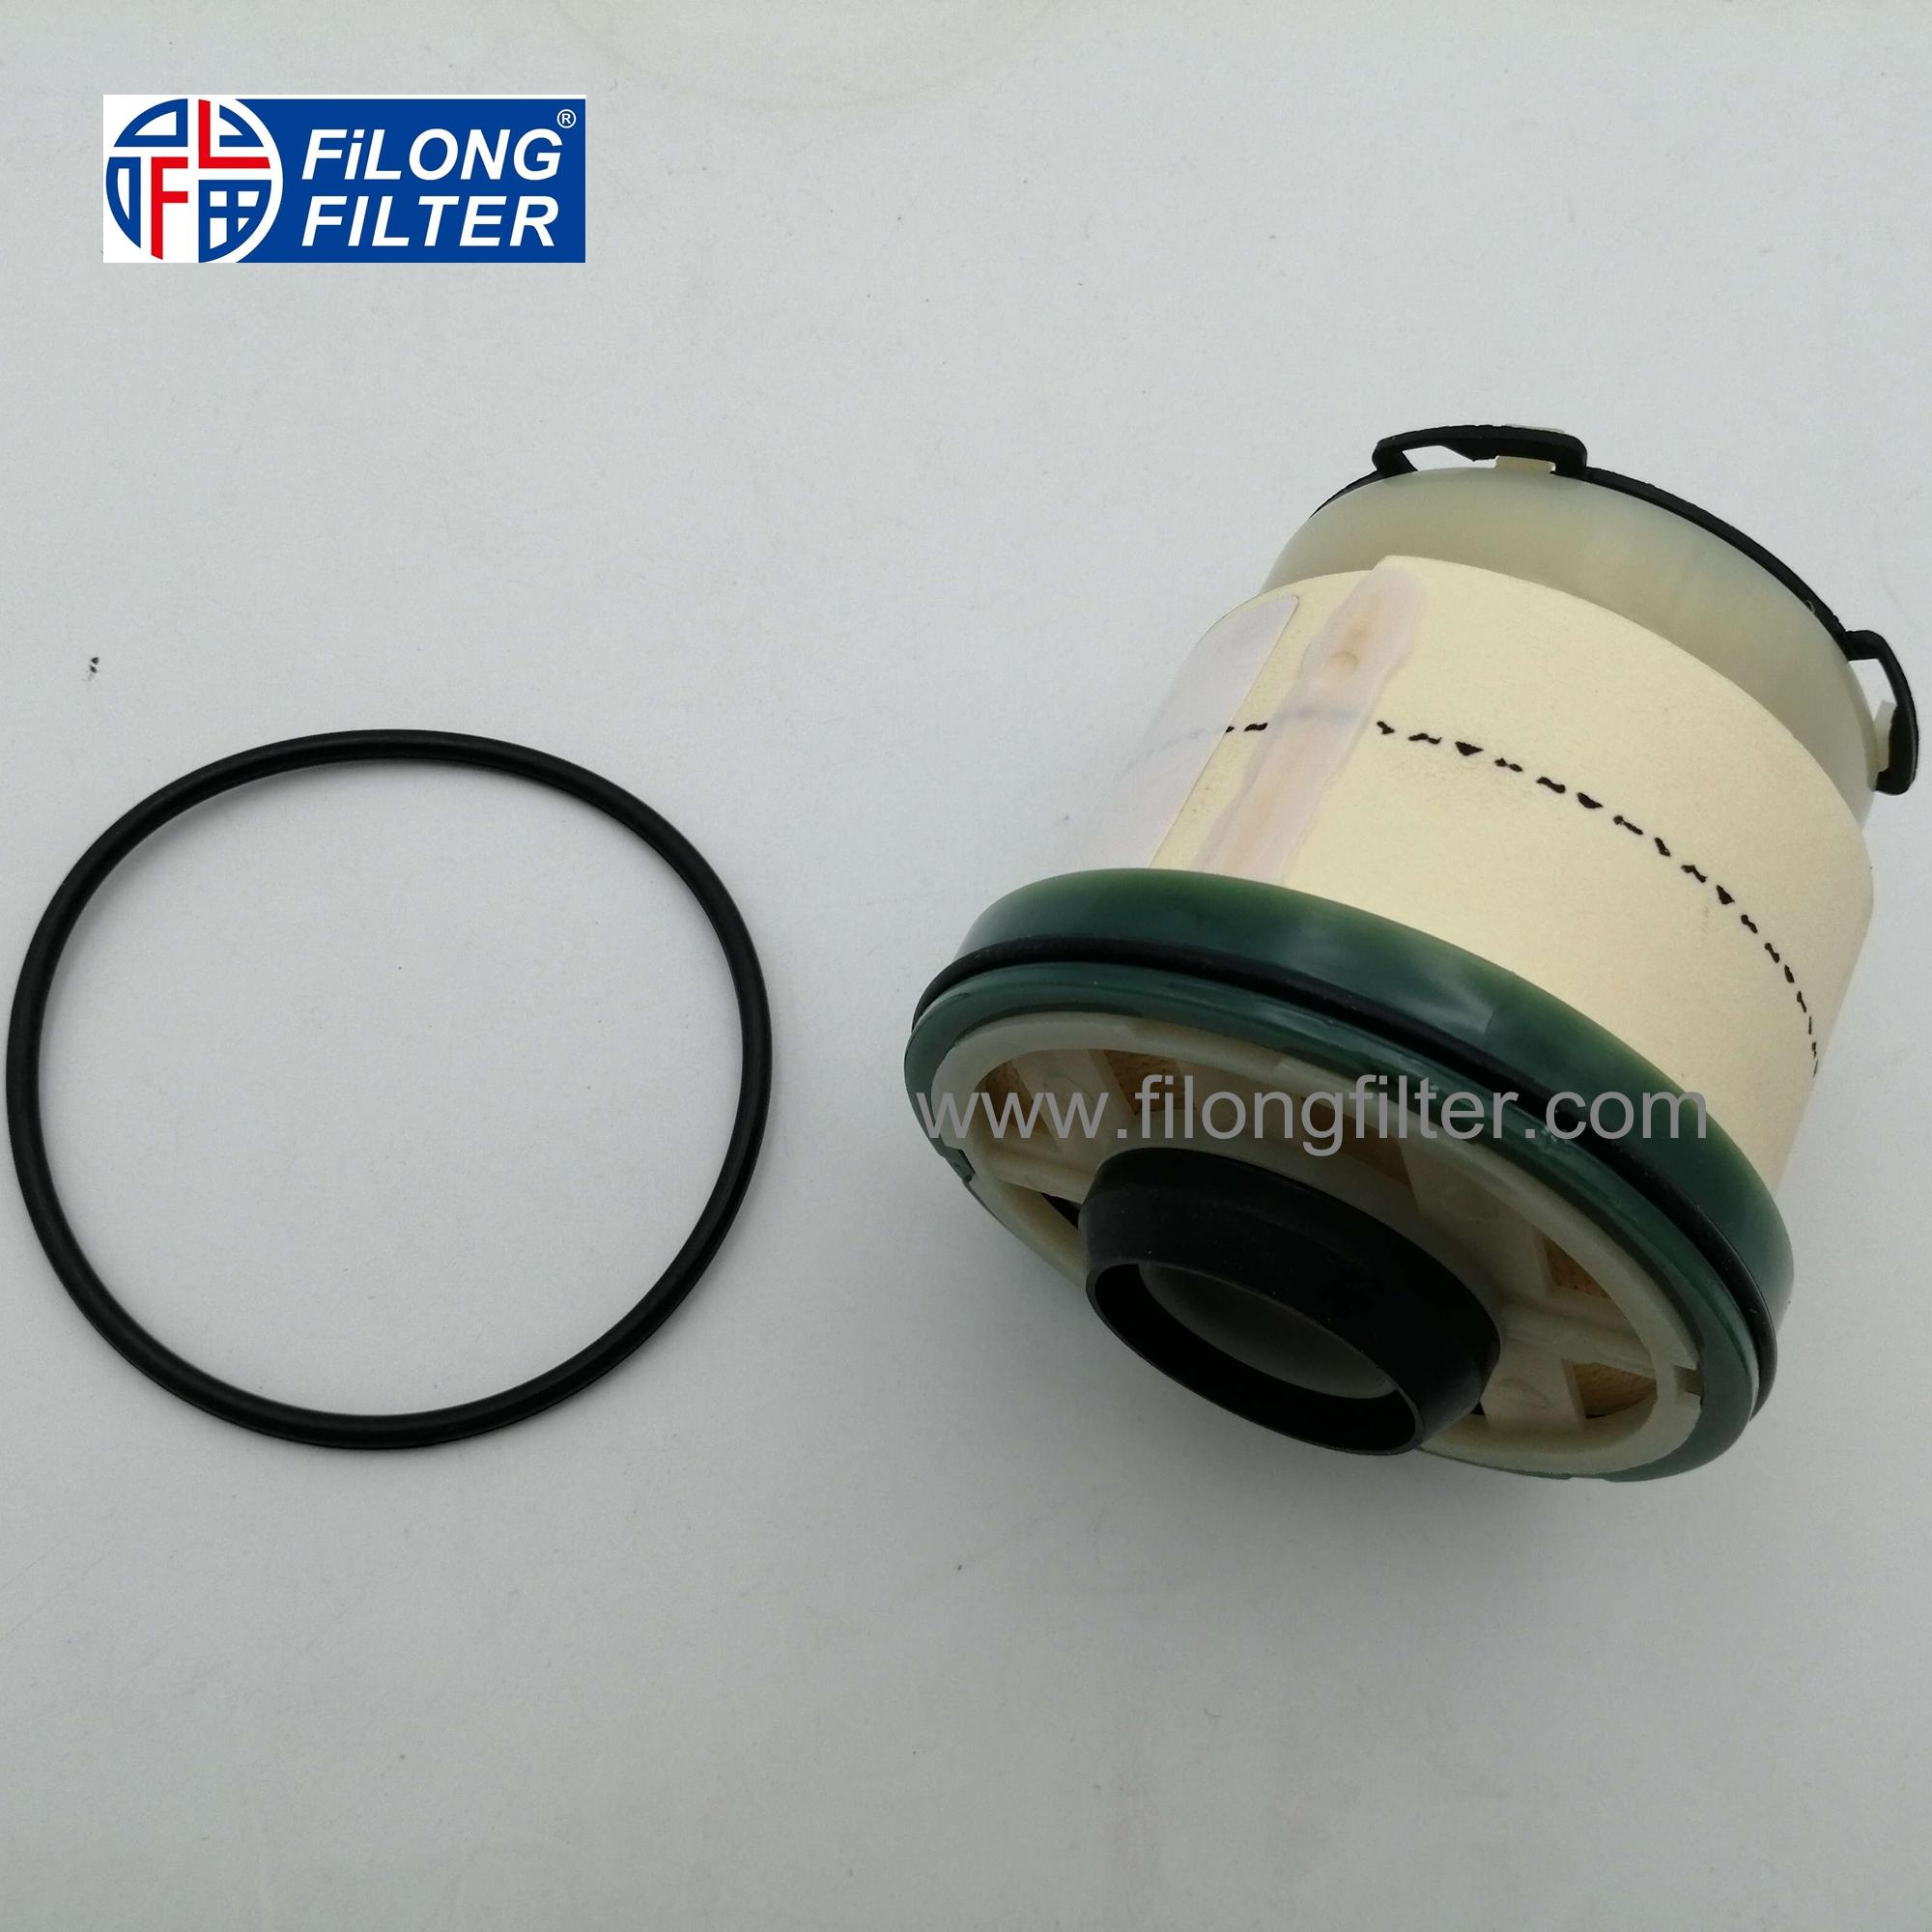 FILONG Manufactory Fuel Filter  FFE-60007 For MAZDA U201-13-ZA5A  U2Y013ZA5 U2Y0-13-ZA5A AB399176AC C11507ECO